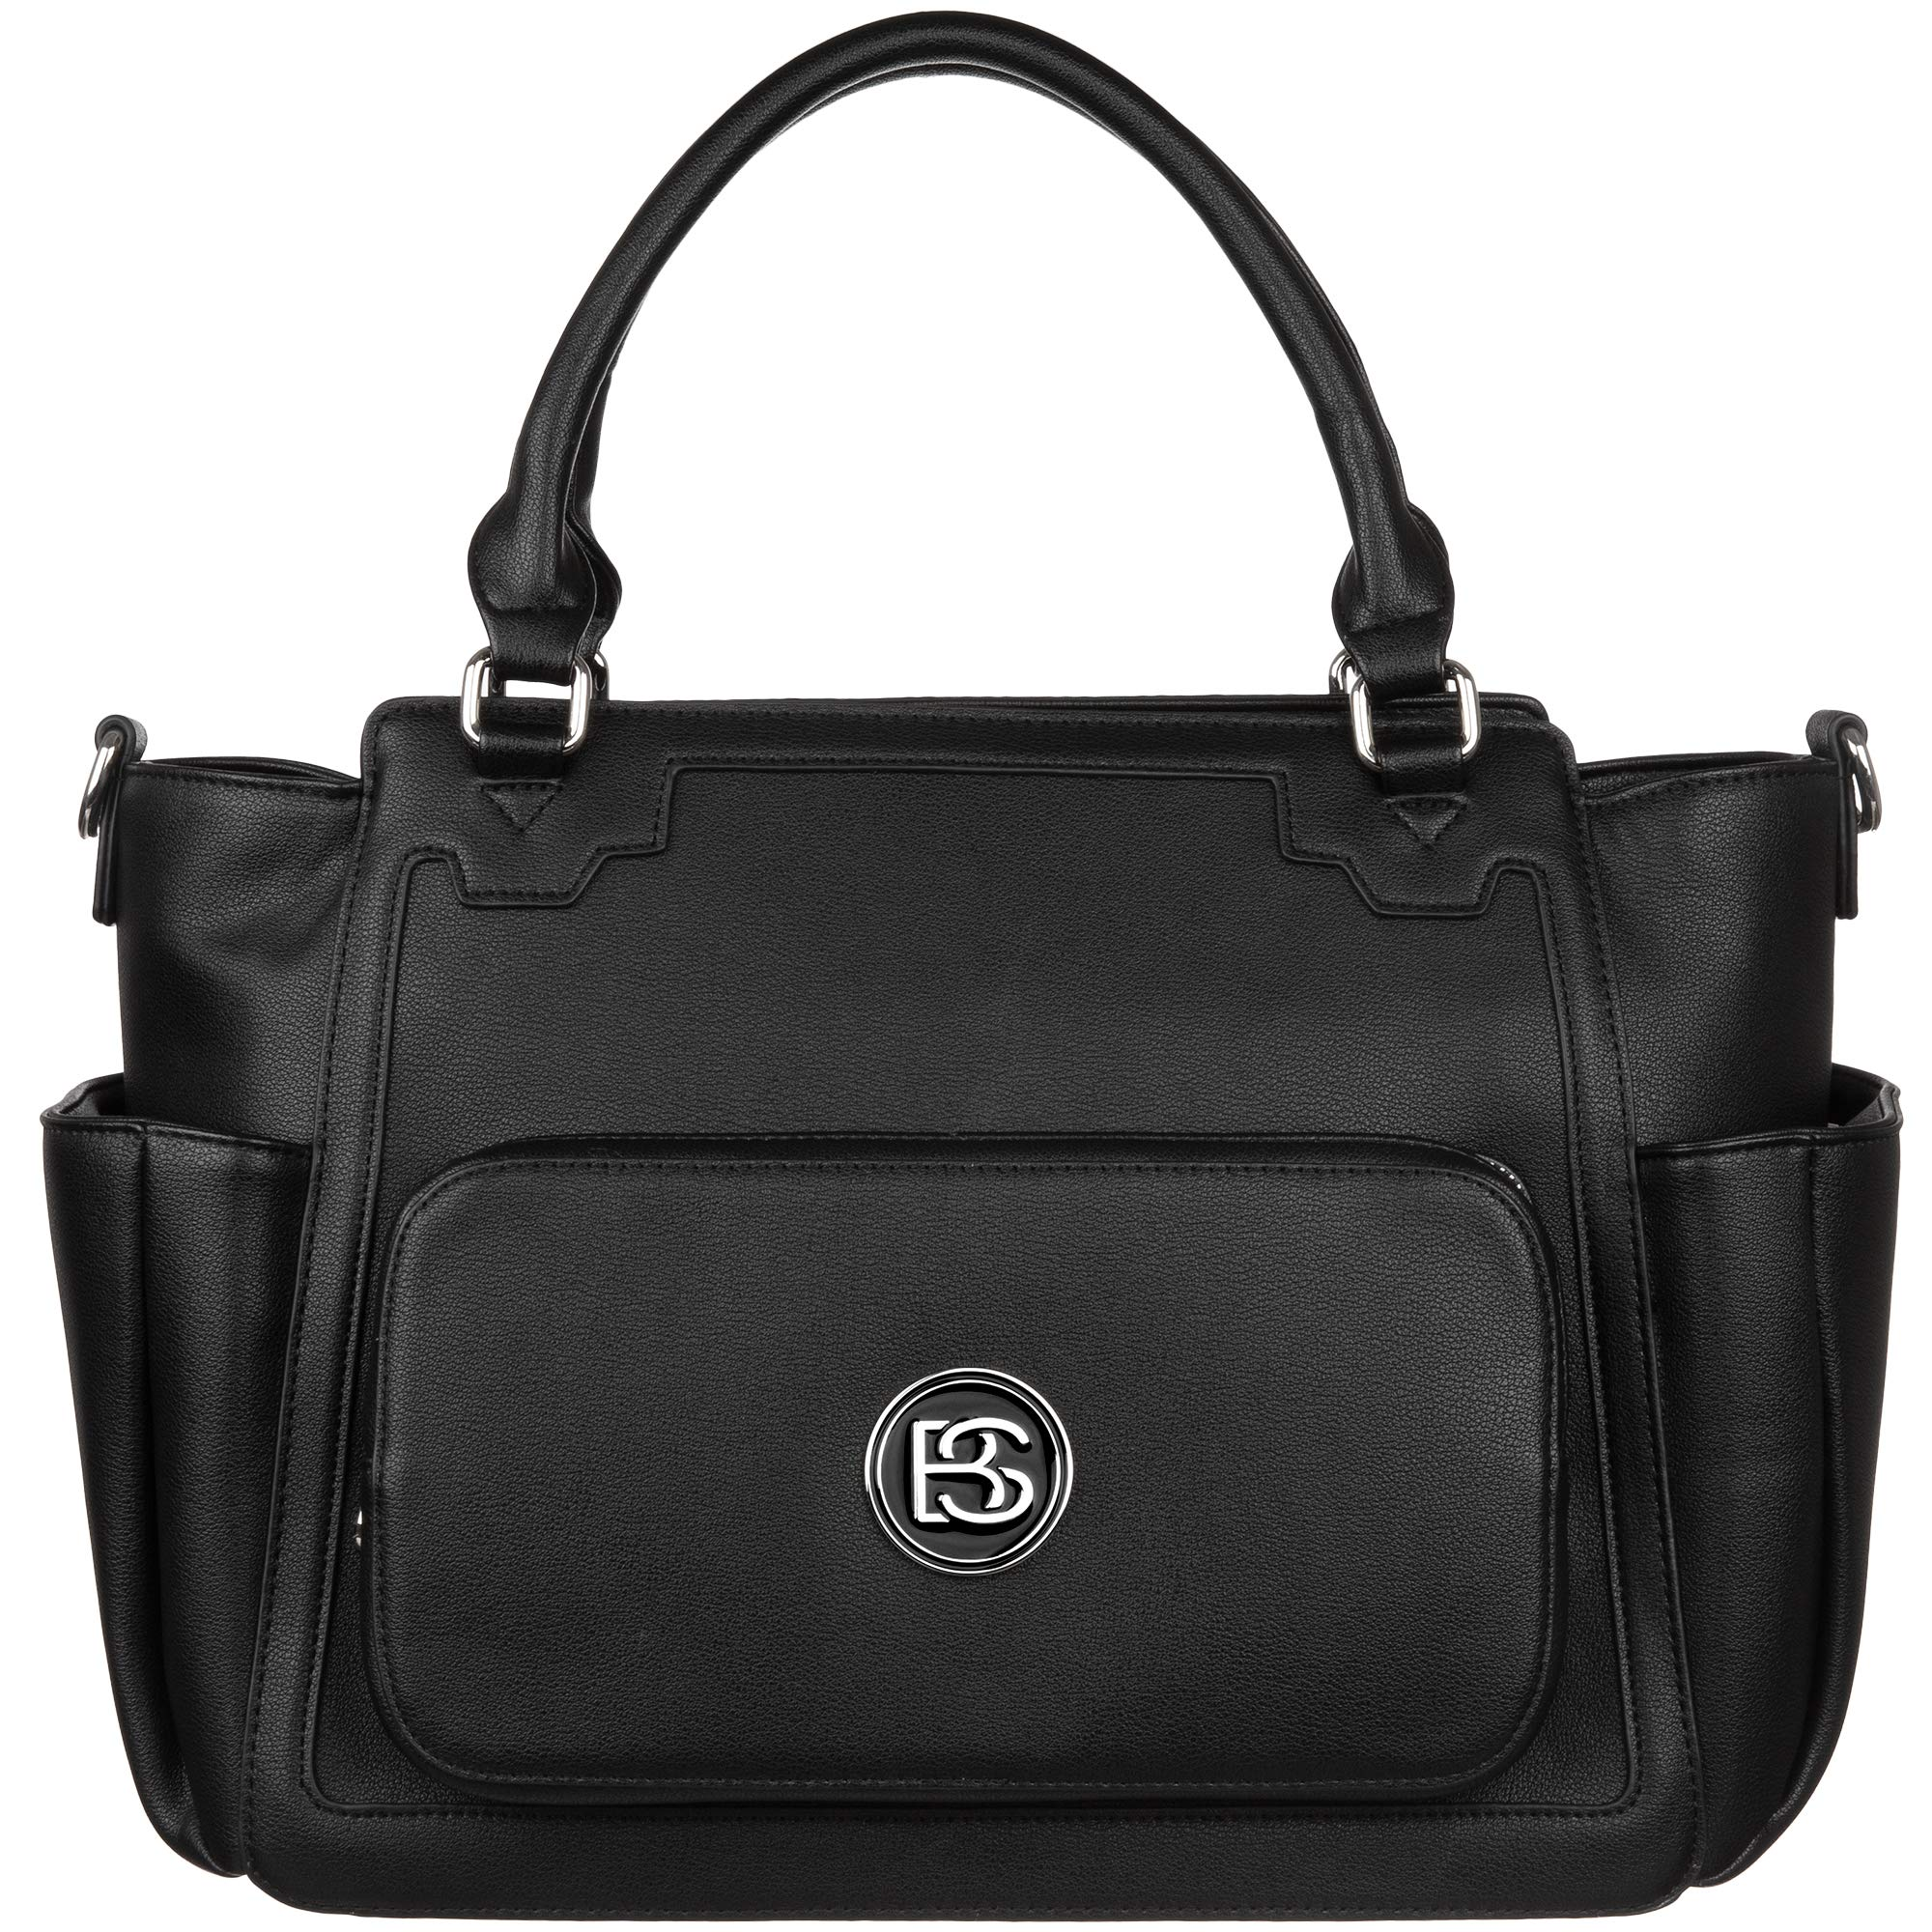 Big Sweety Luxury Designer Diaper Bag Tote - The Baby Bag Set for Stylish Moms